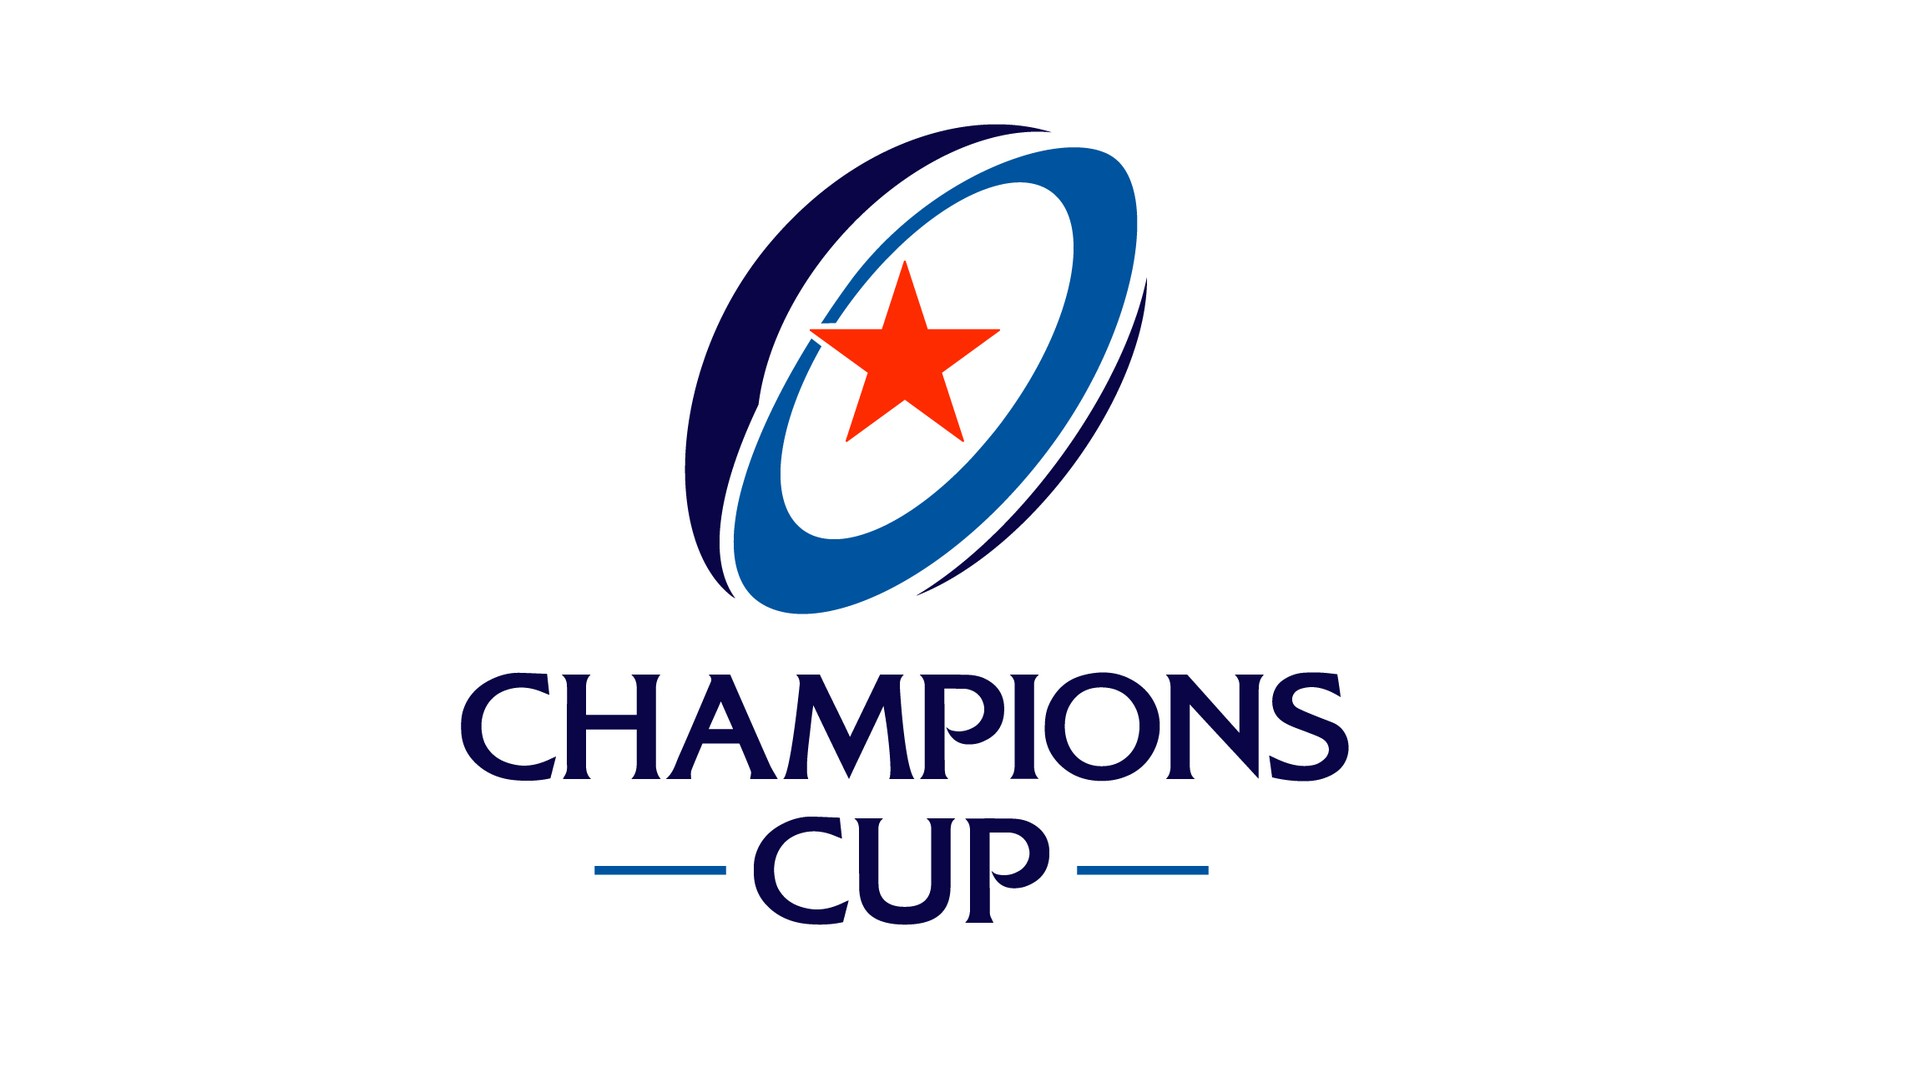 Rugby – Champions Cup (1) Logo